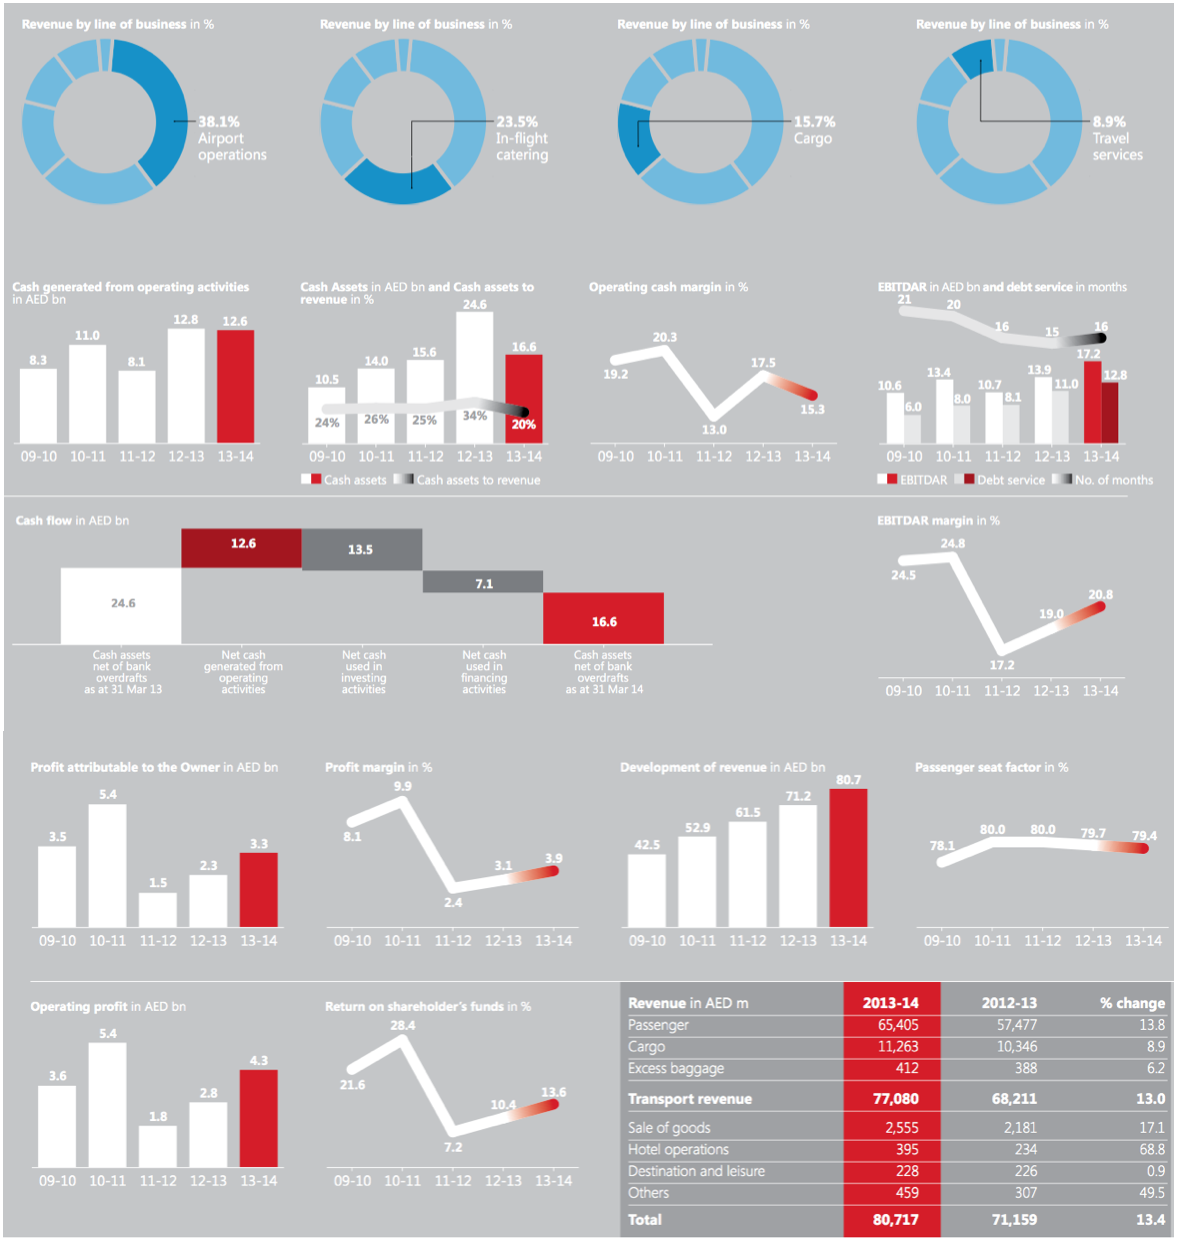 The Emirates Group financial data 2013-2014